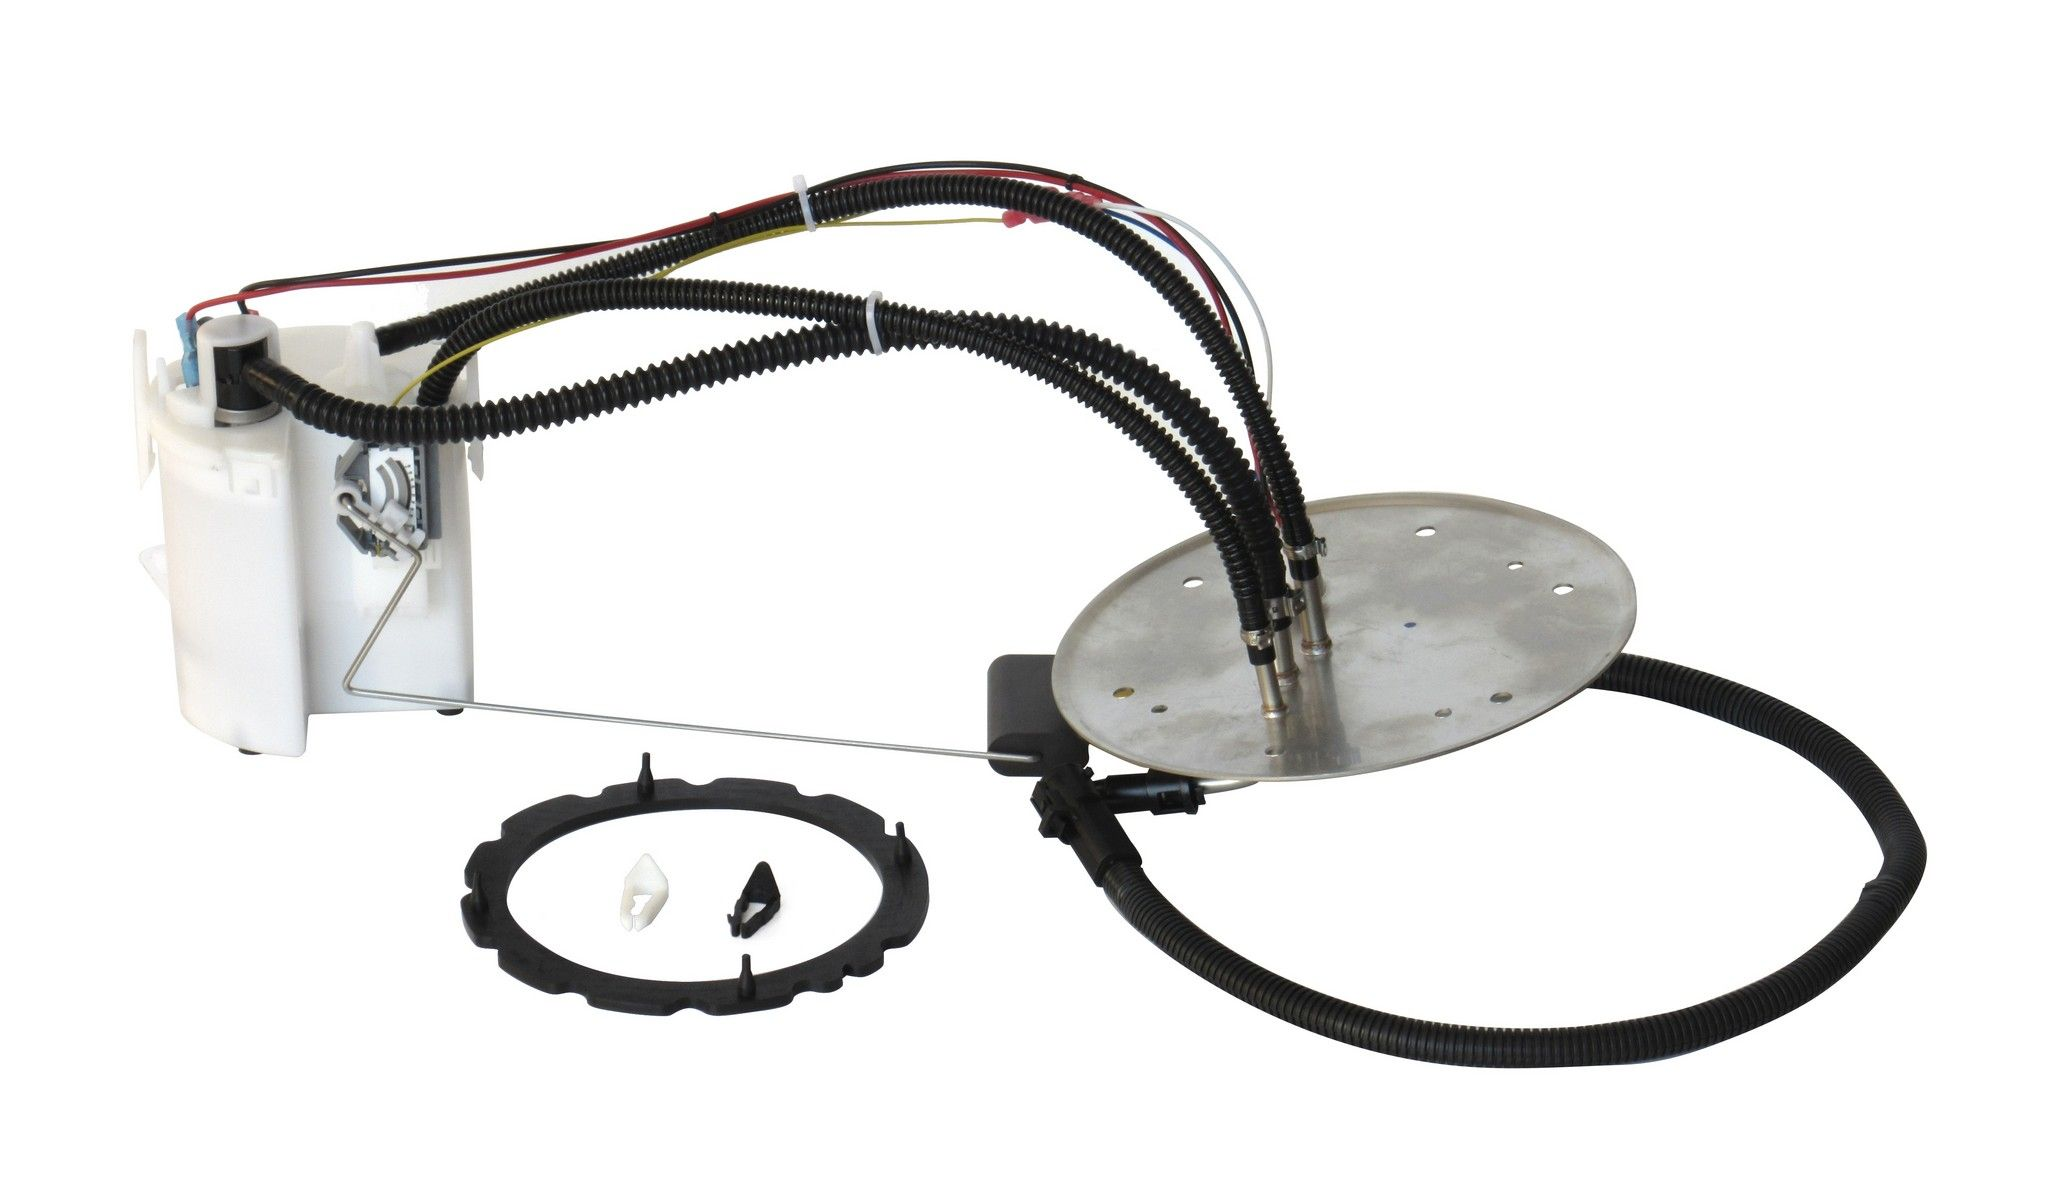 Ford F 250 Super Duty Fuel Pump Module Assembly Replacement Airtex 1999 Filter Gasket 2004 8 Cyl 54l Autobest F1292a Rear Tank Includes Sending Unit Float Reservoir